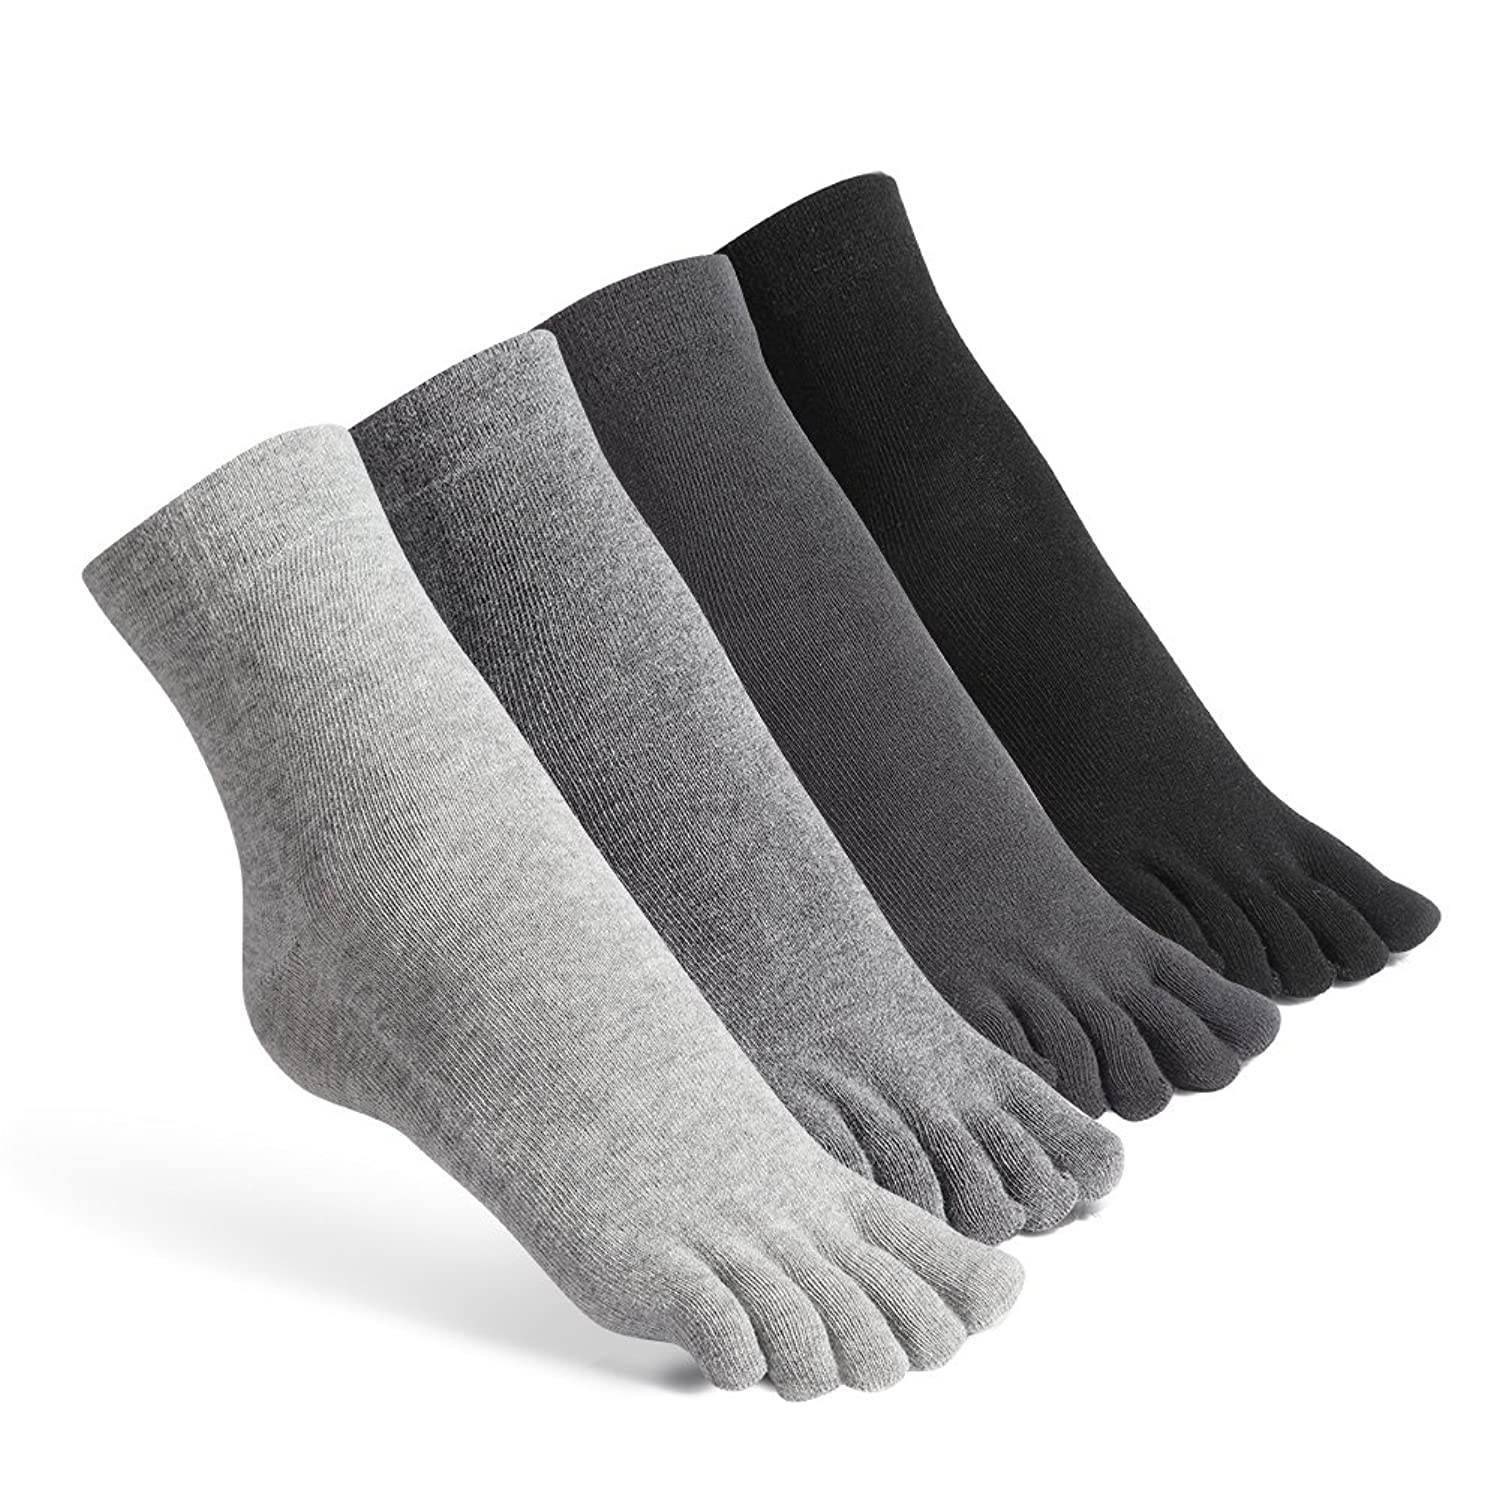 Meaiguo Toe Socks Cotton Running Five Finger Crew Socks